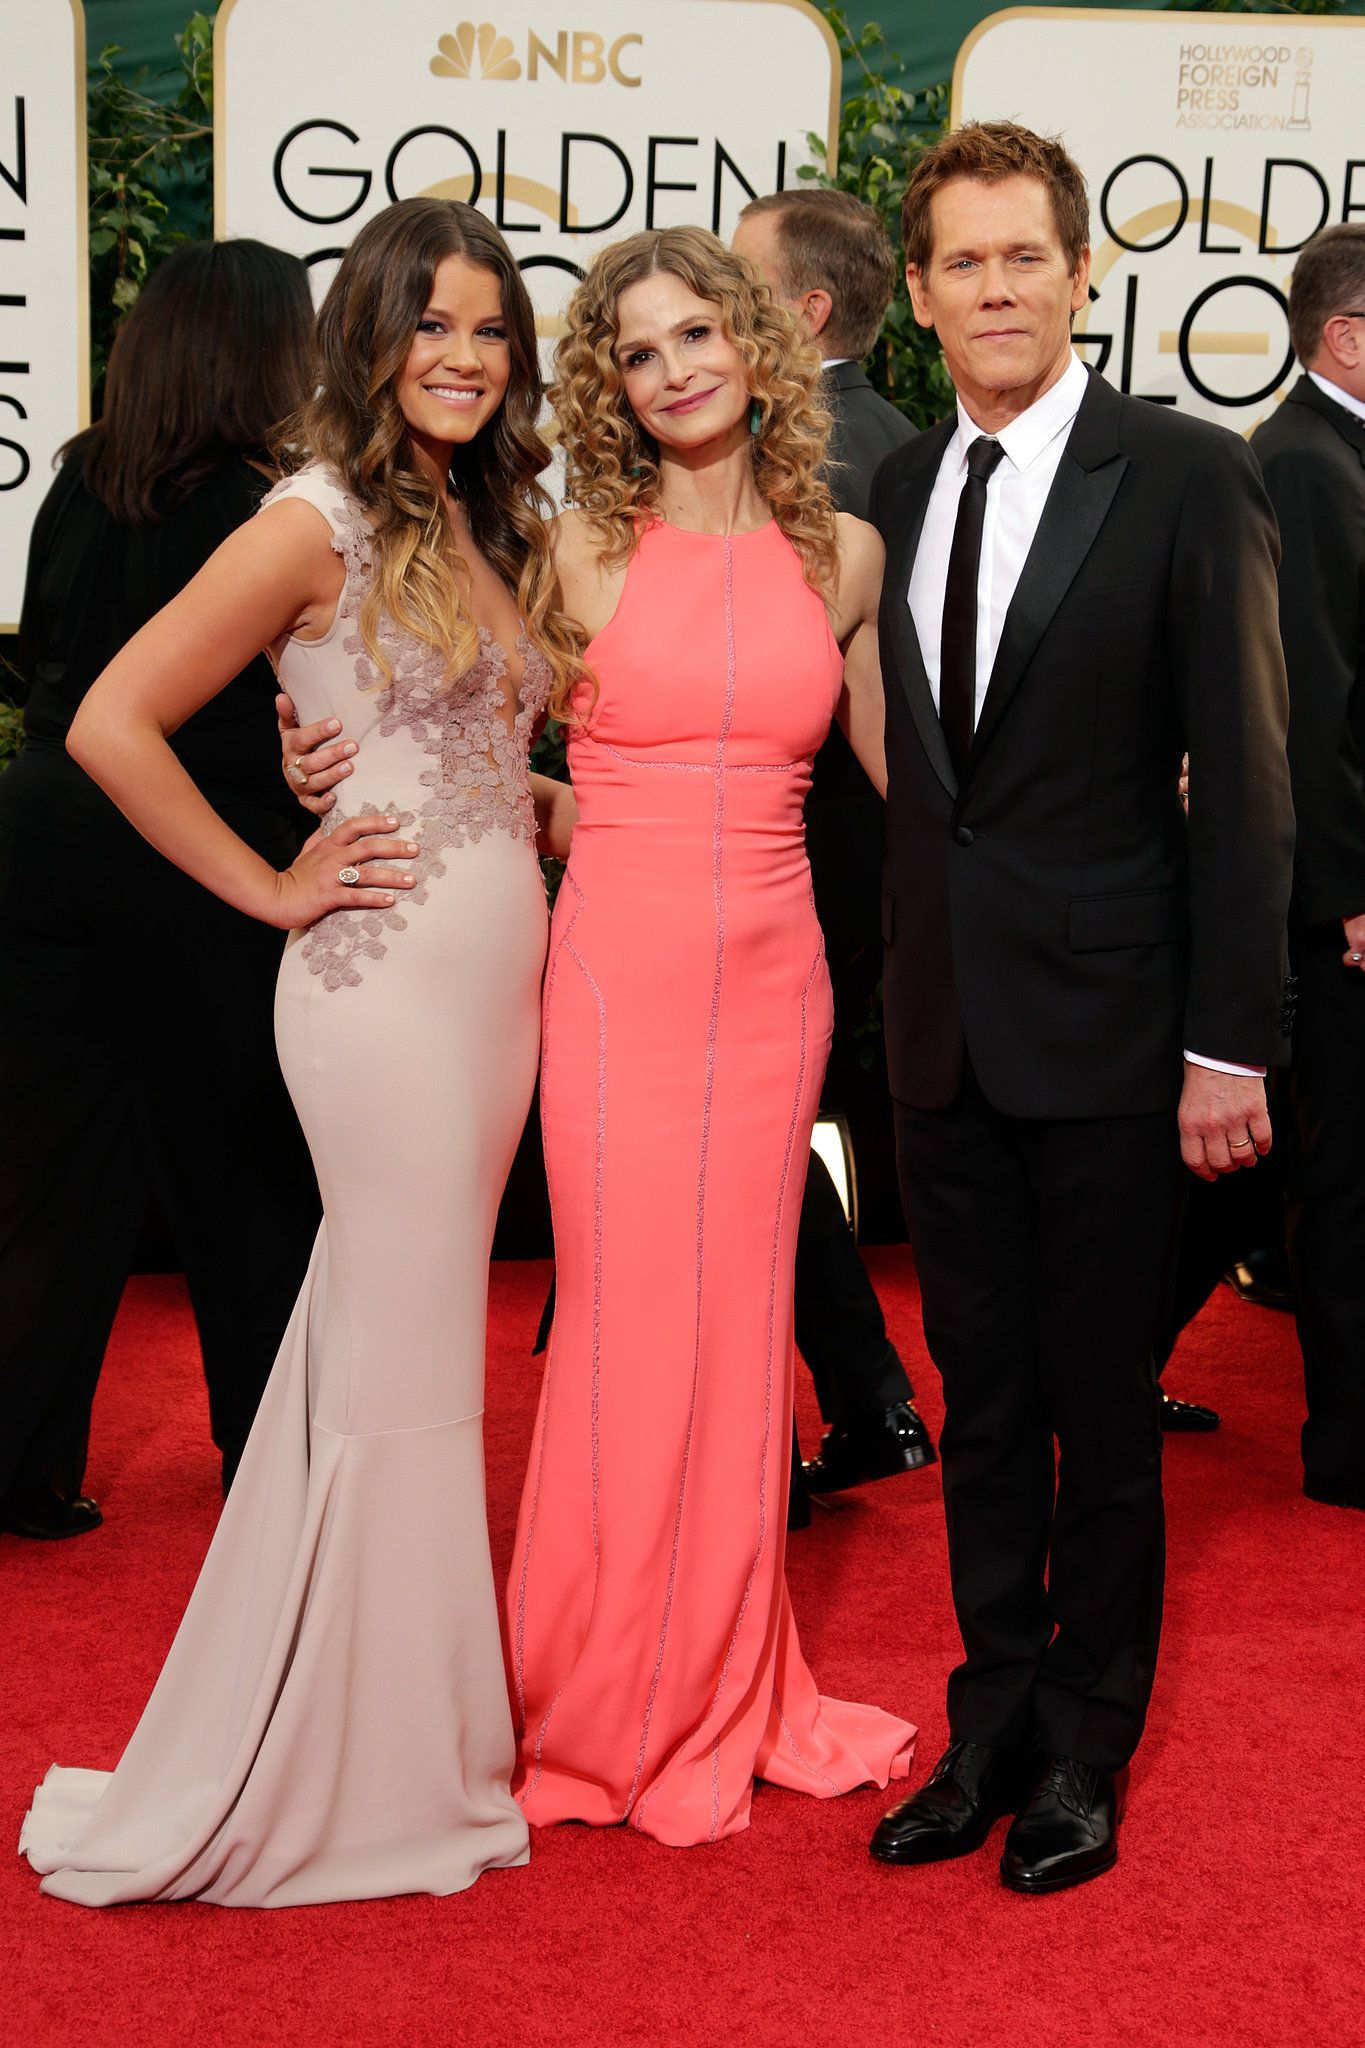 kyra sedgwick and kevin bacon hit the red carpet with